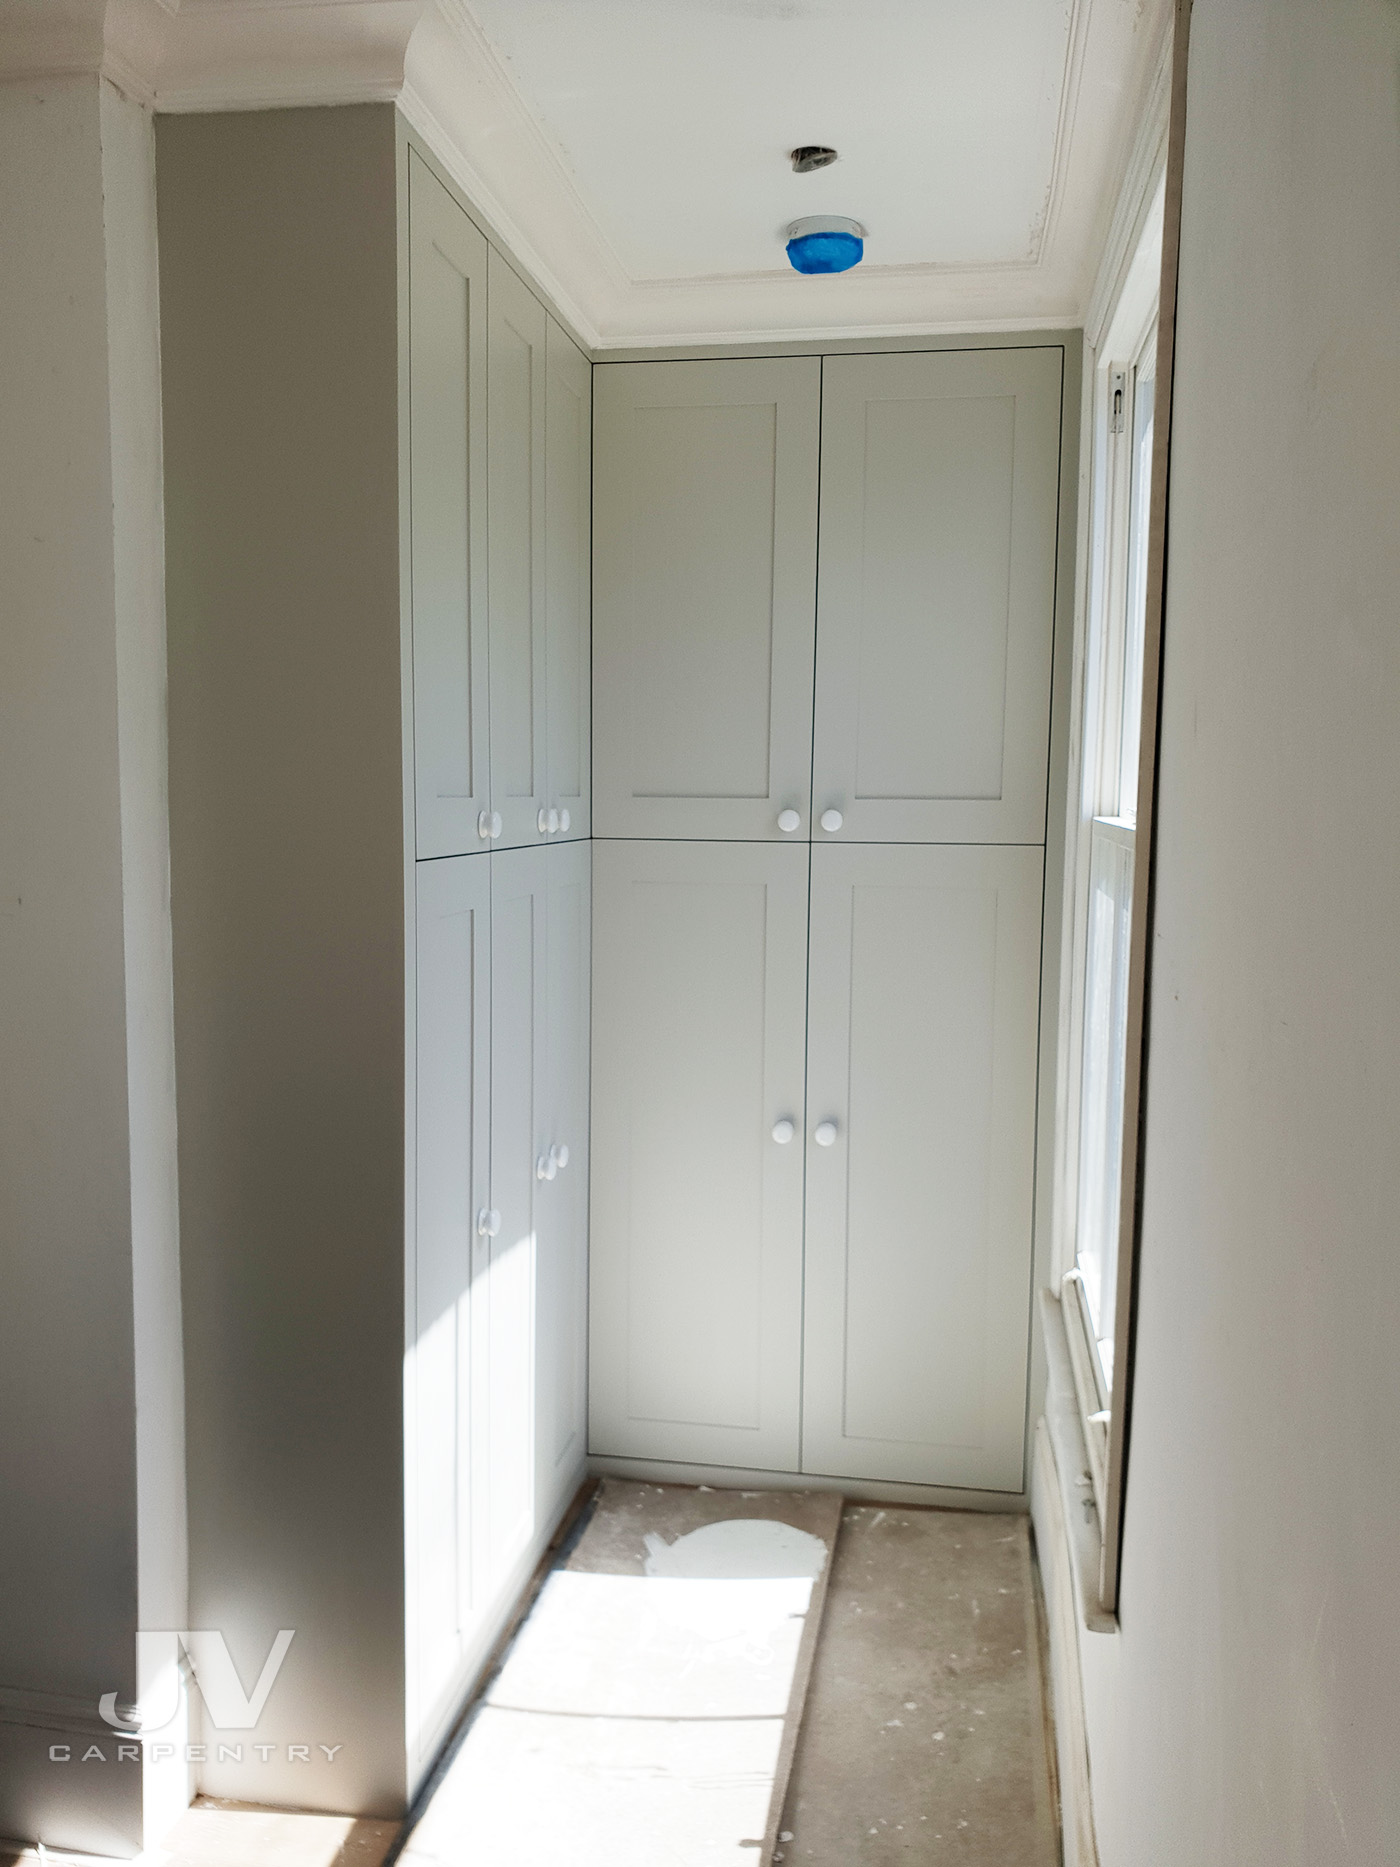 fitted wardrobe opposite the window